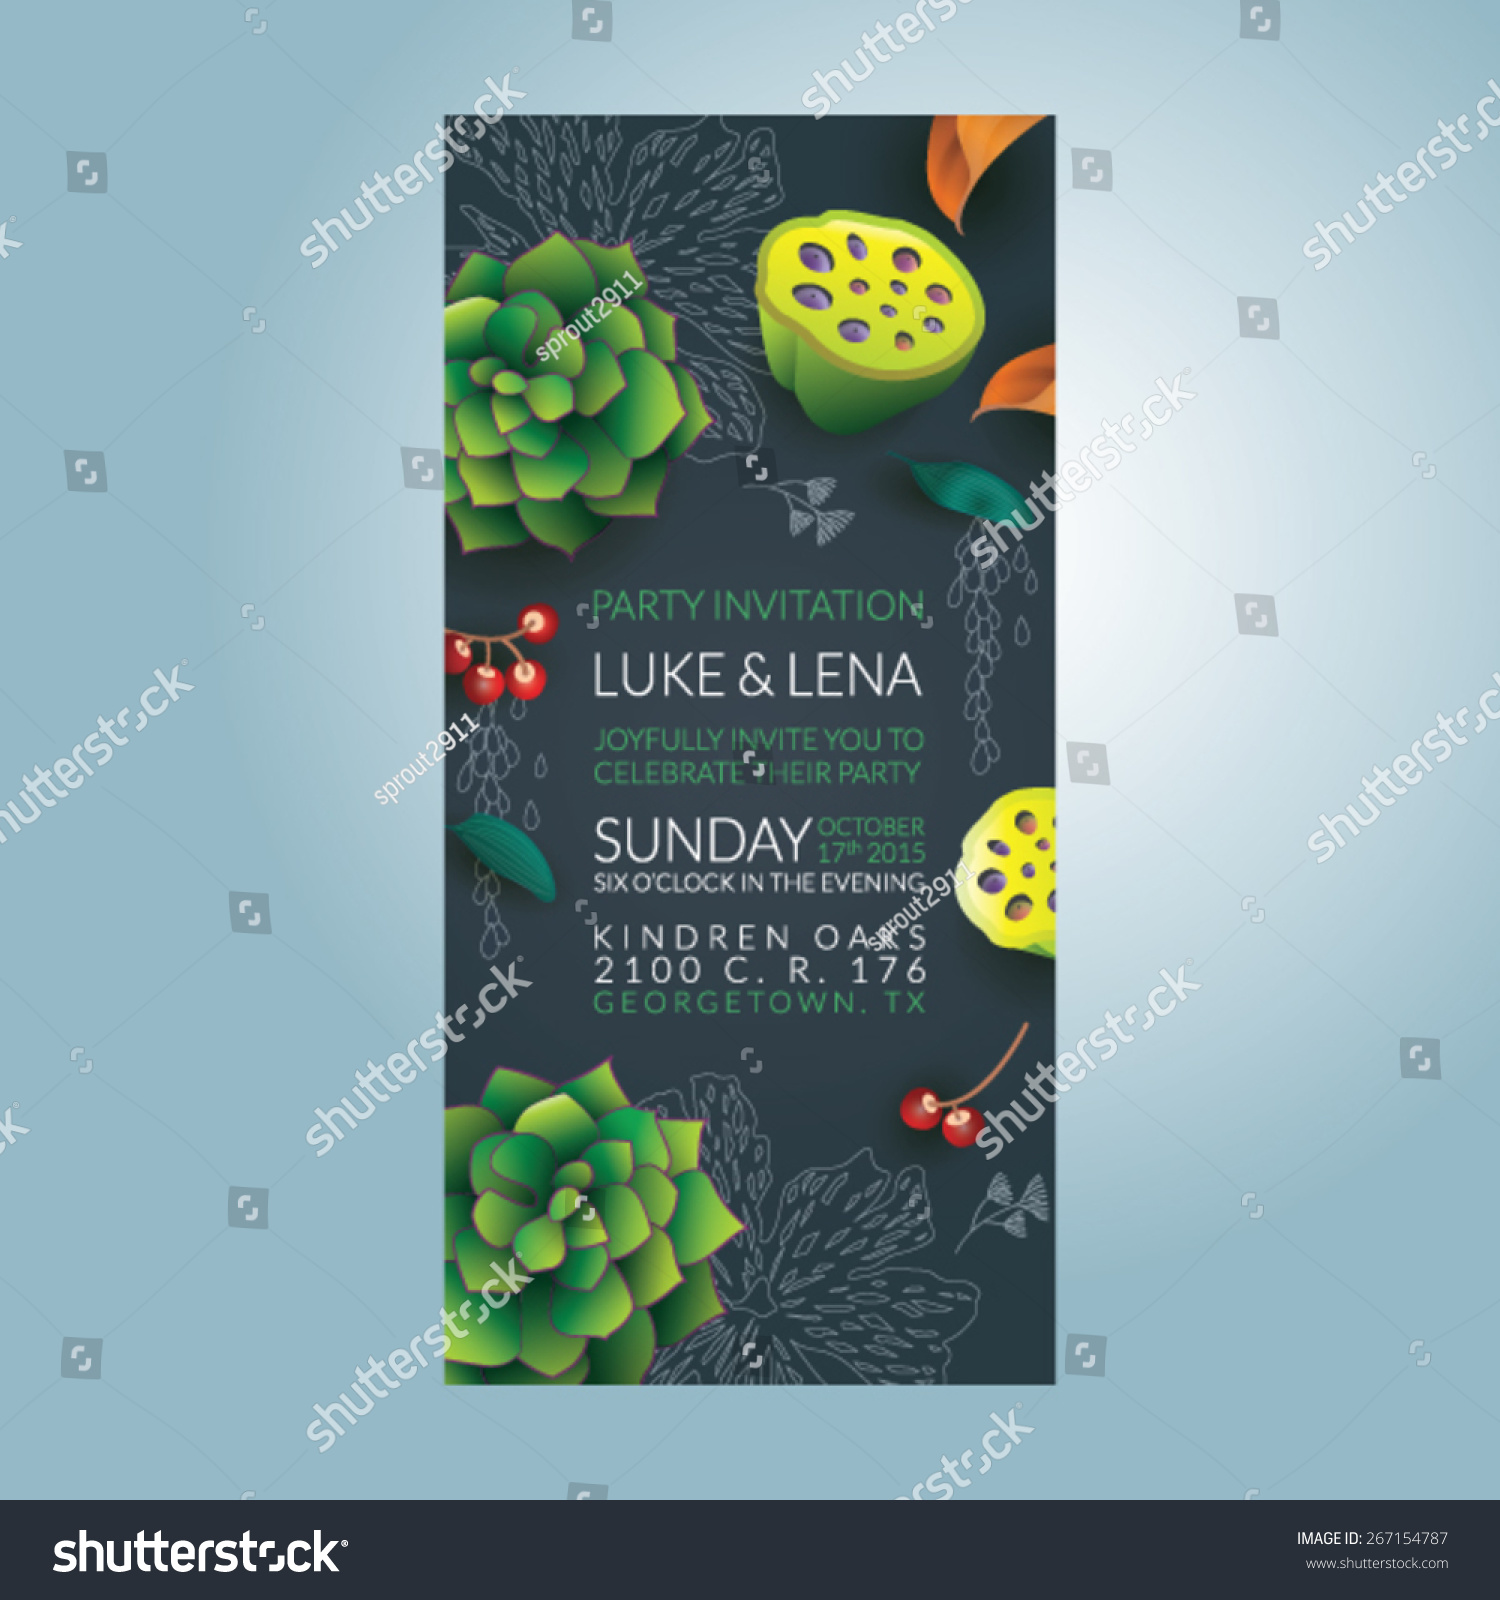 Beautiful vector invitation card eps 10 stock vector 267154787 beautiful vector invitation card eps 10 stopboris Image collections